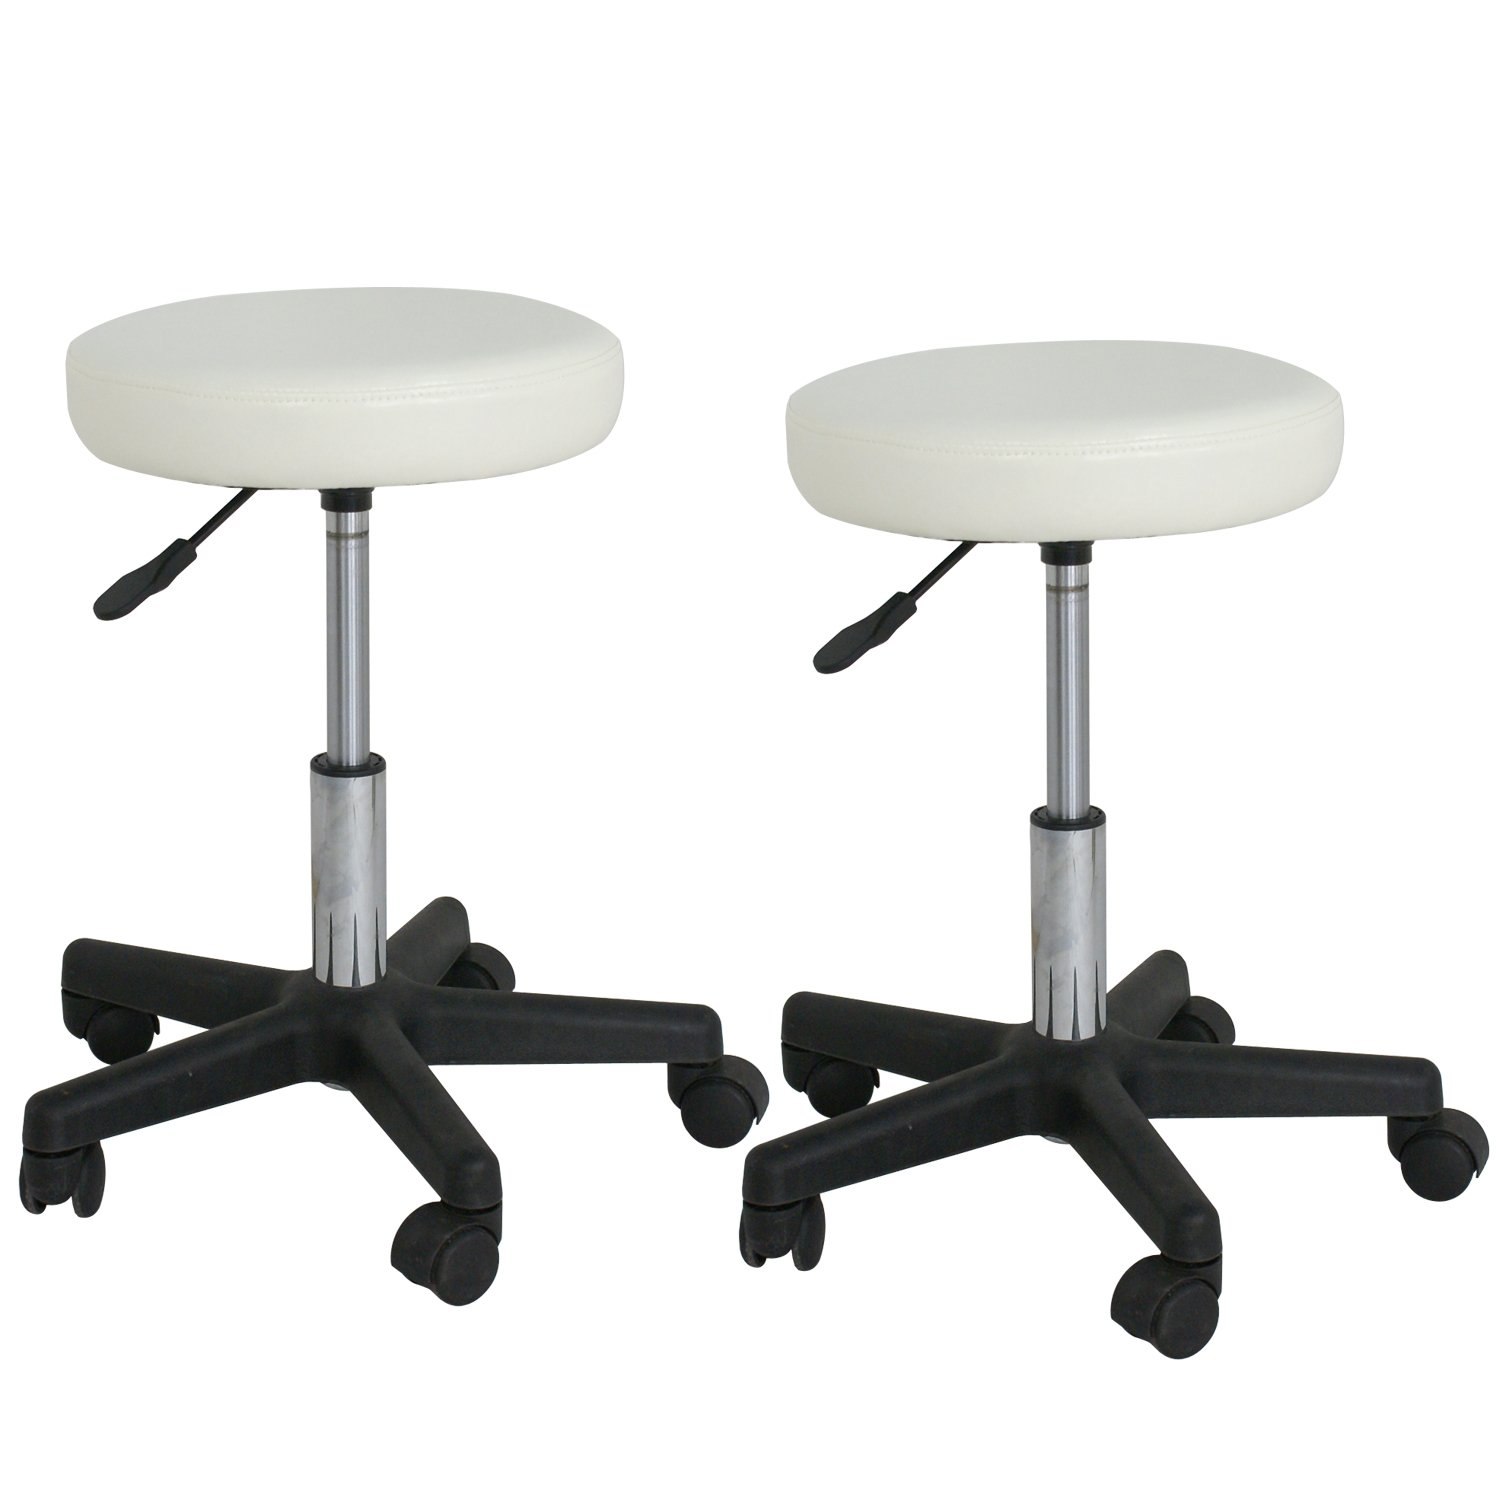 F2C Leather Adjustable Bar Stools Swivel Chairs Facial Massage Spa Salon Stool with Wheels White/Black (2PCS White) by F2C (Image #2)